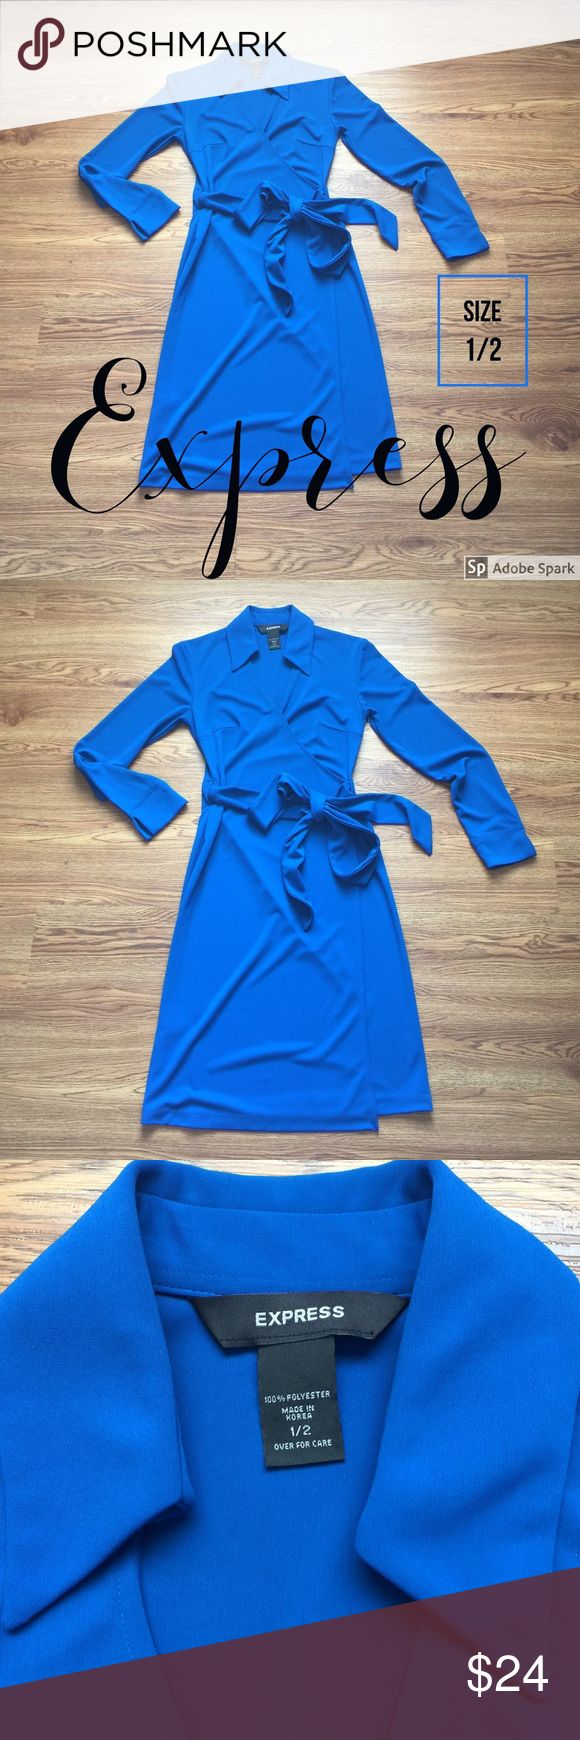 Express Blue Wrap Dress, size 1/2 Express Blue Wrap Dress, size 1/2. This dress is beautiful in a sharp, electric blue. This dress is used but in great condition and is excellent quality. I am happy to answer questions or provide measurements upon request! Express Dresses